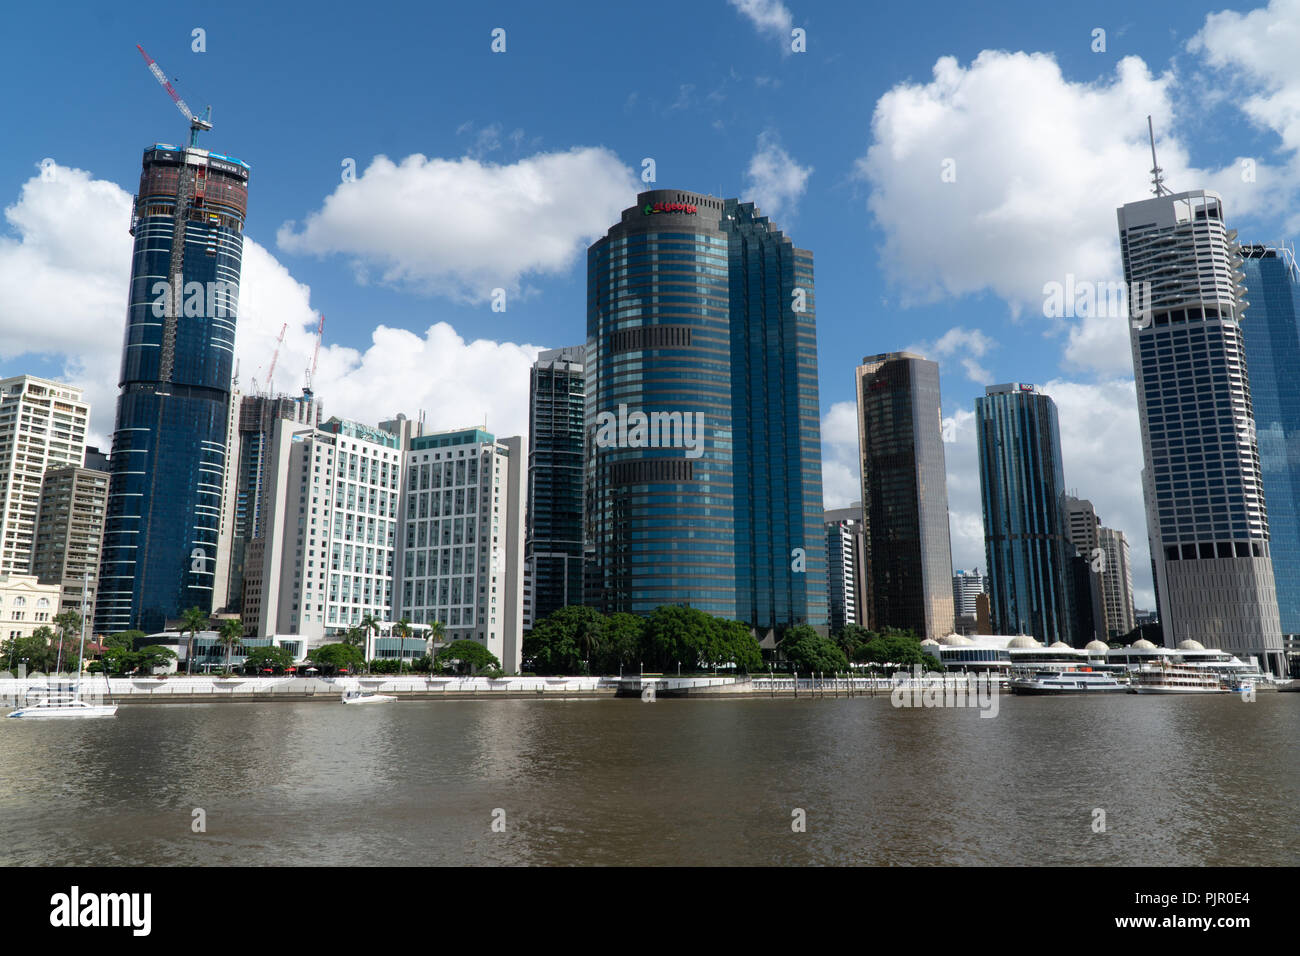 Panorama of modern skyscrapers on the Brisbane River, Australia - Stock Image